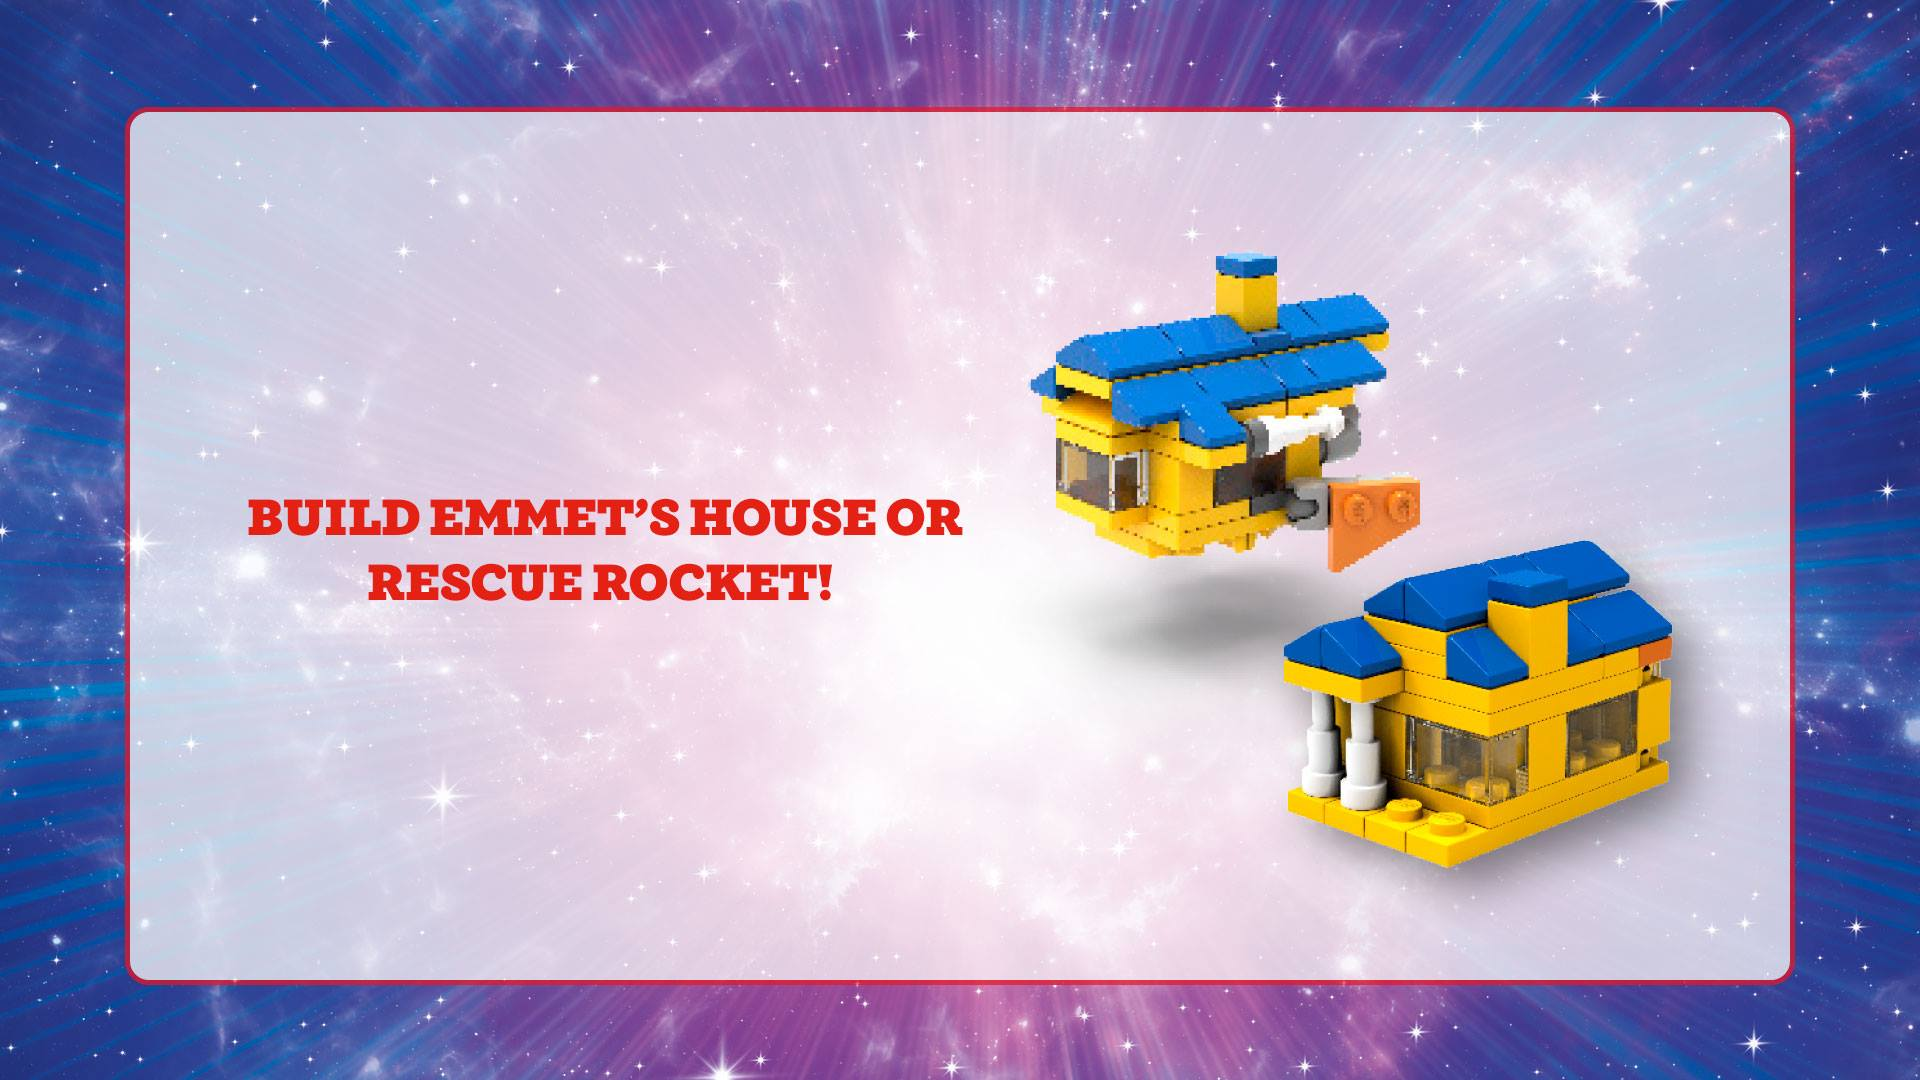 Build Emmet's House or Rescue Rocket!